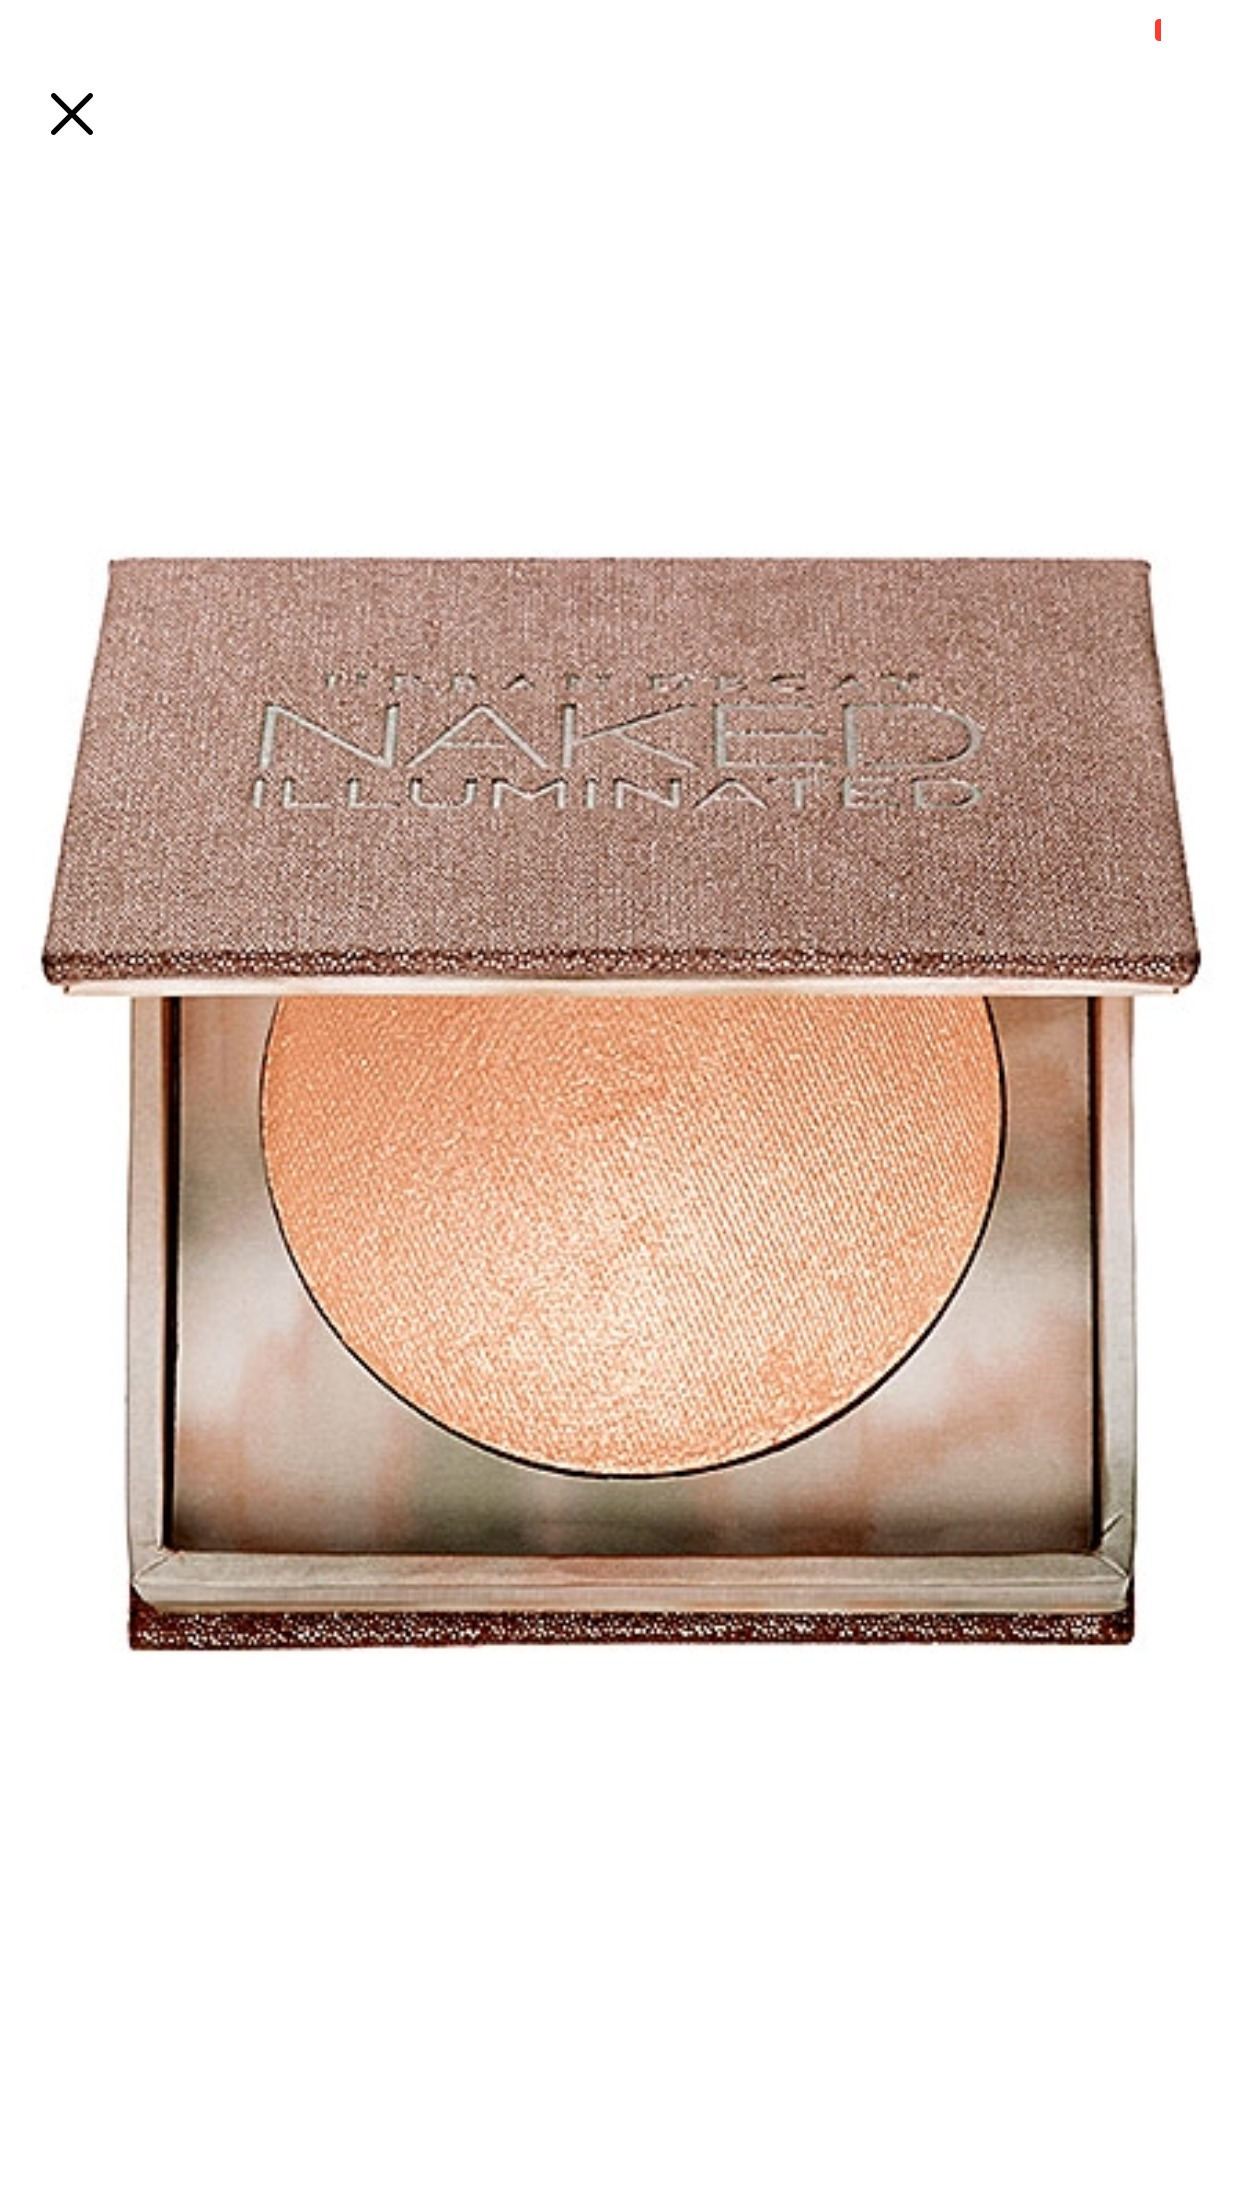 Urban Decay Naked Illuminated Shimmering Powder in Lit